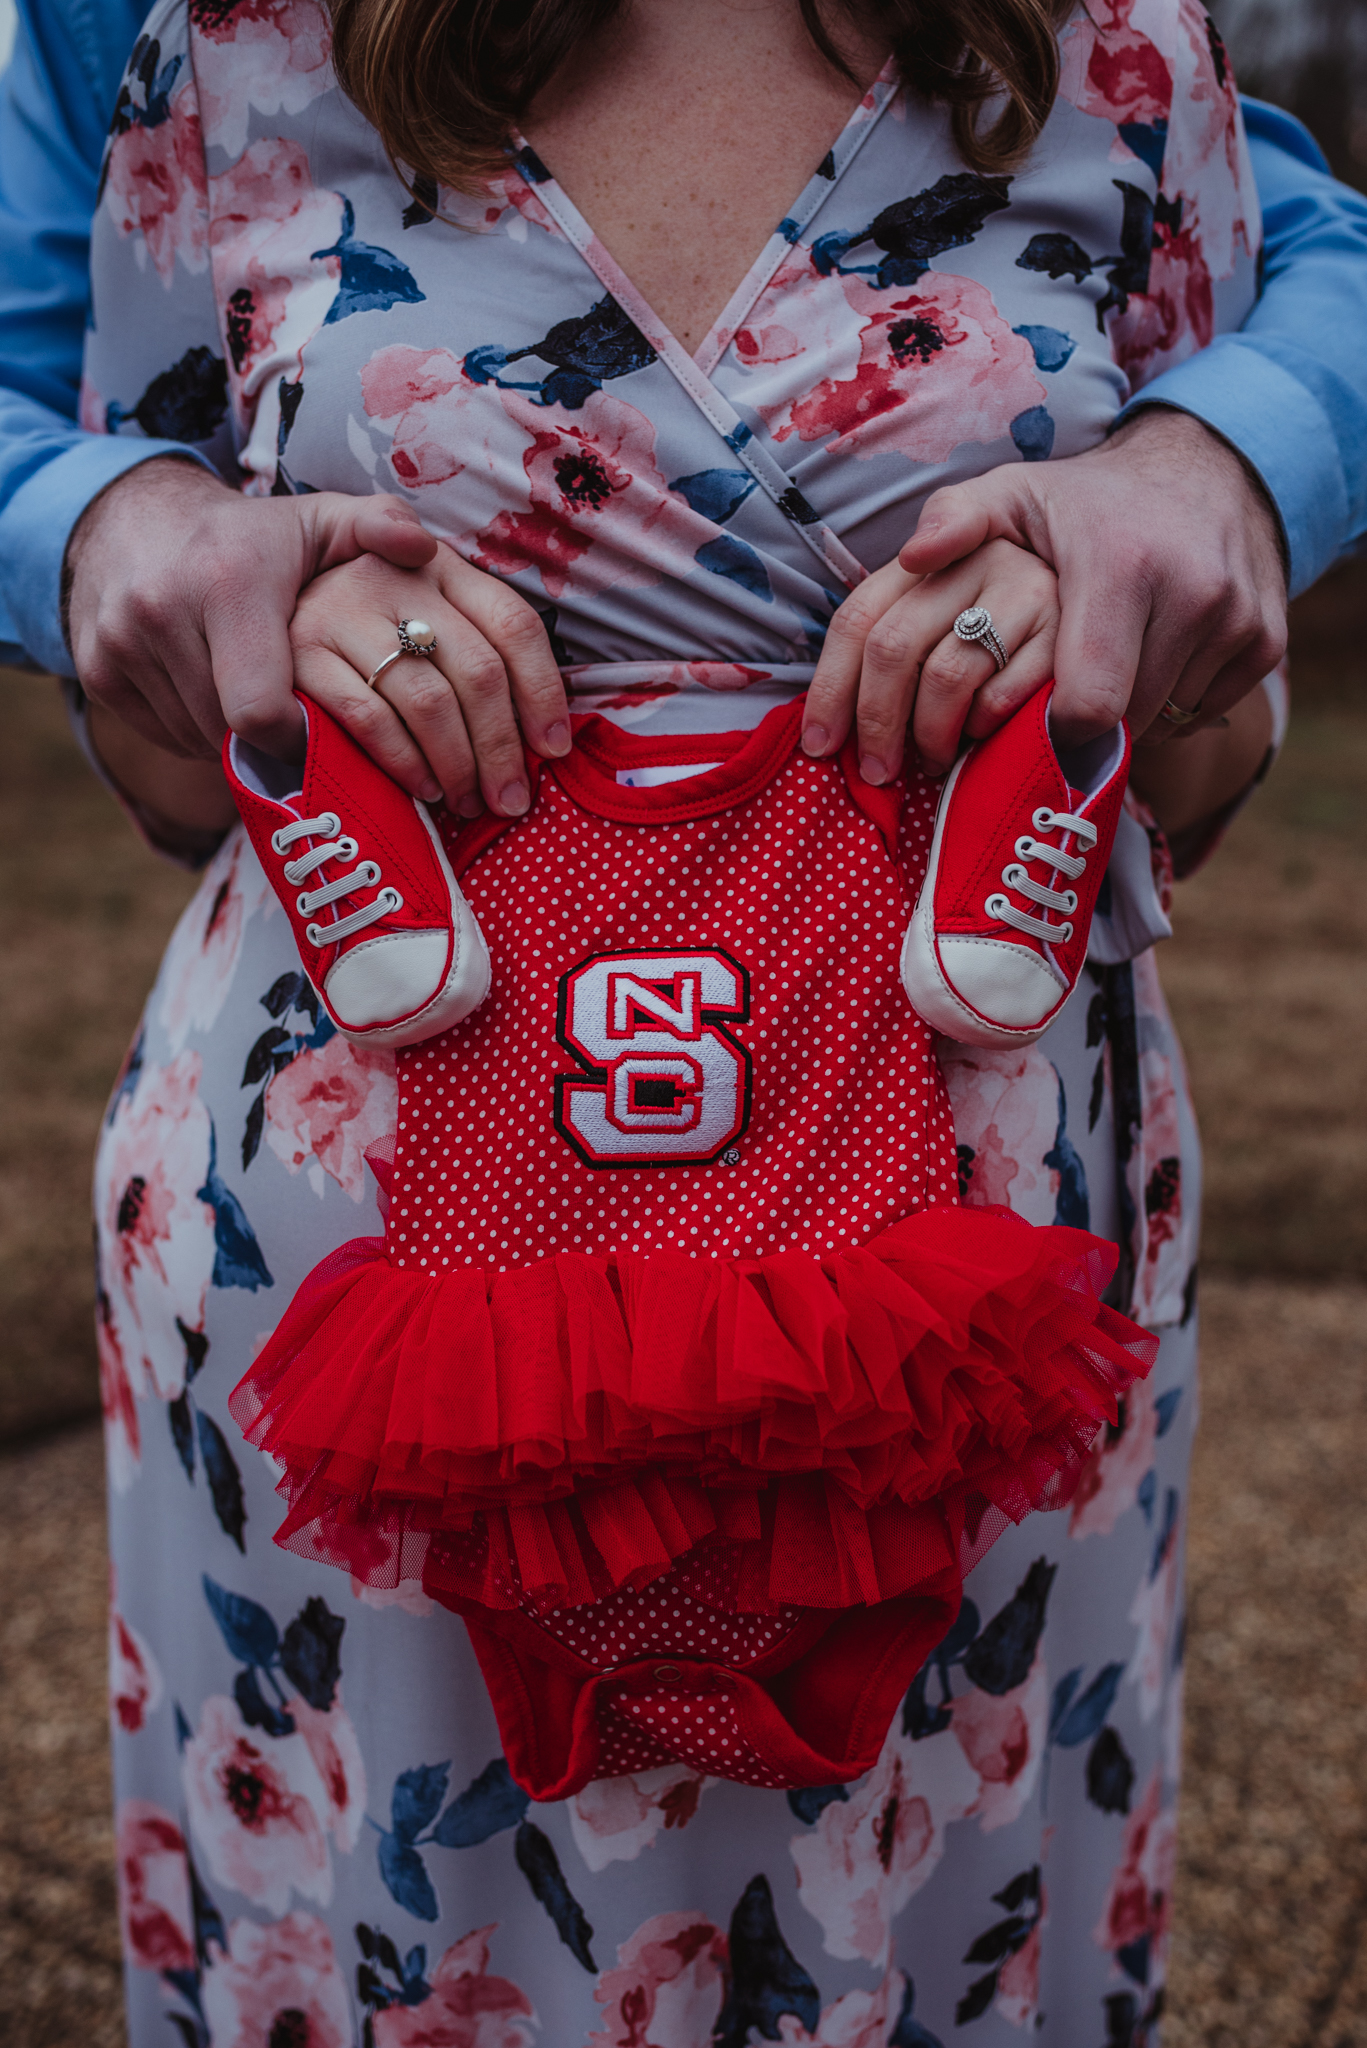 The parents to be show off their baby girl's NC State tutu and shoes, picture taken by Rose Trail Images at Joyner Park in Wake Forest, NC.